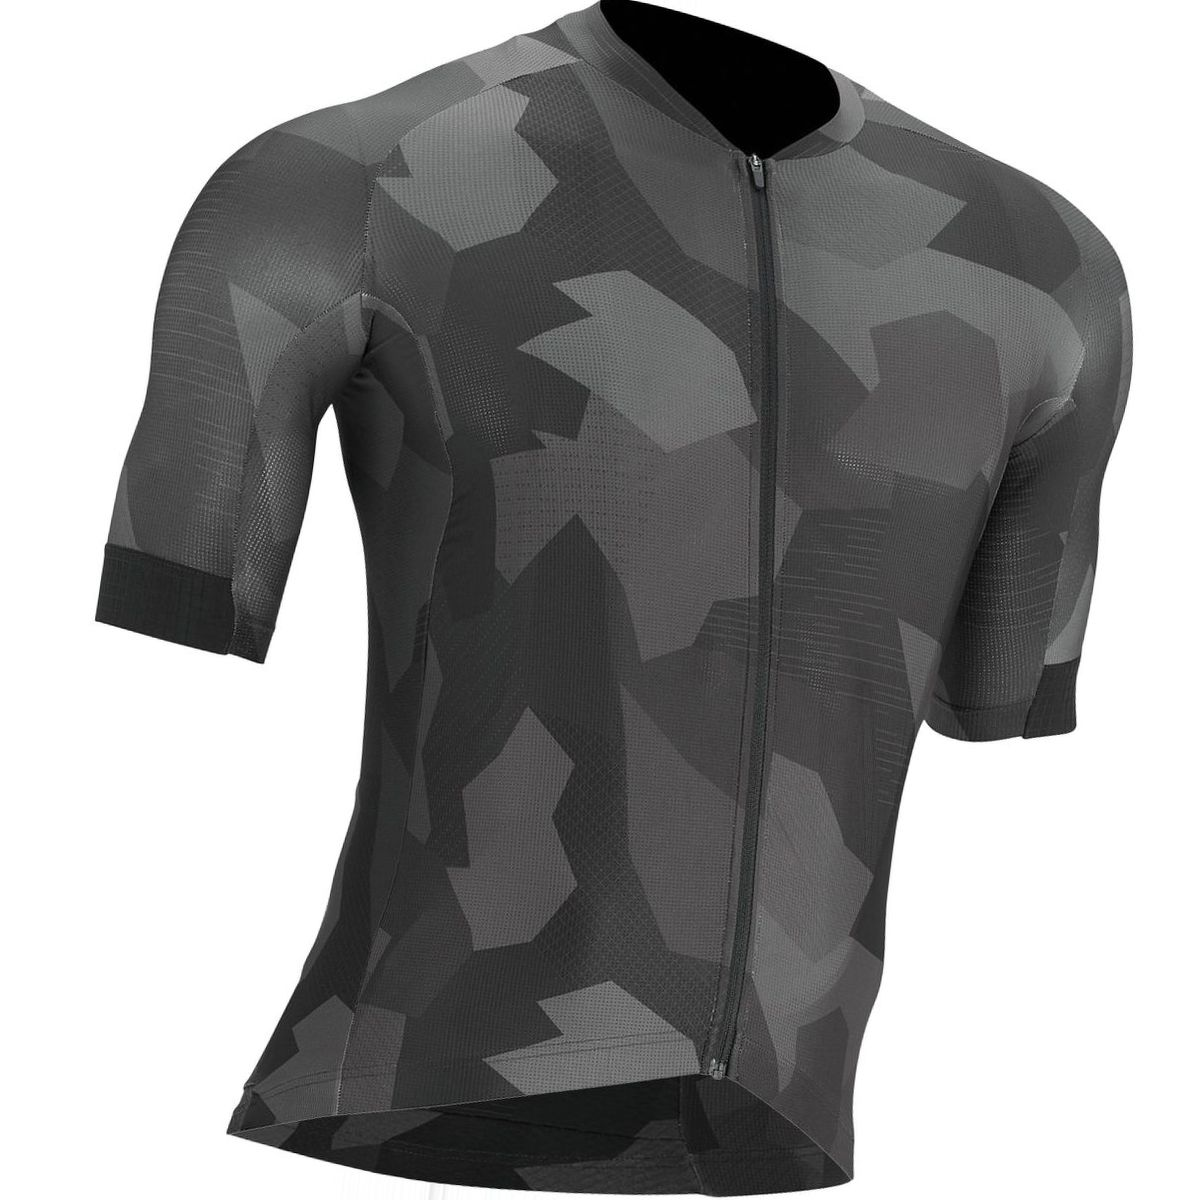 Capo Citizen Camo Jersey - Men's